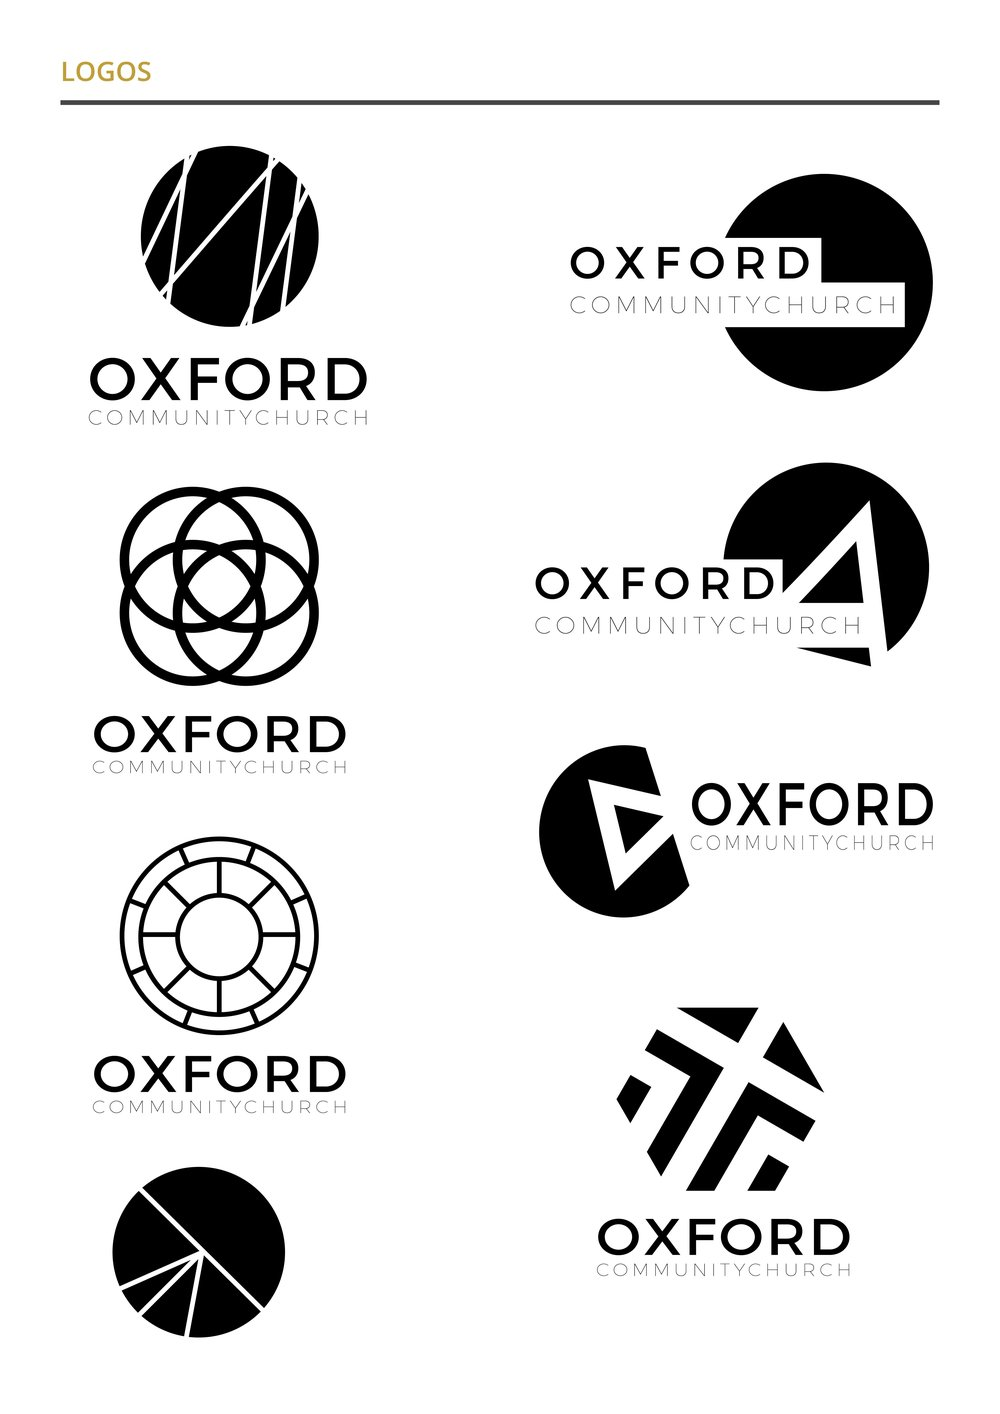 logo concepts.1.2shrunk.jpg